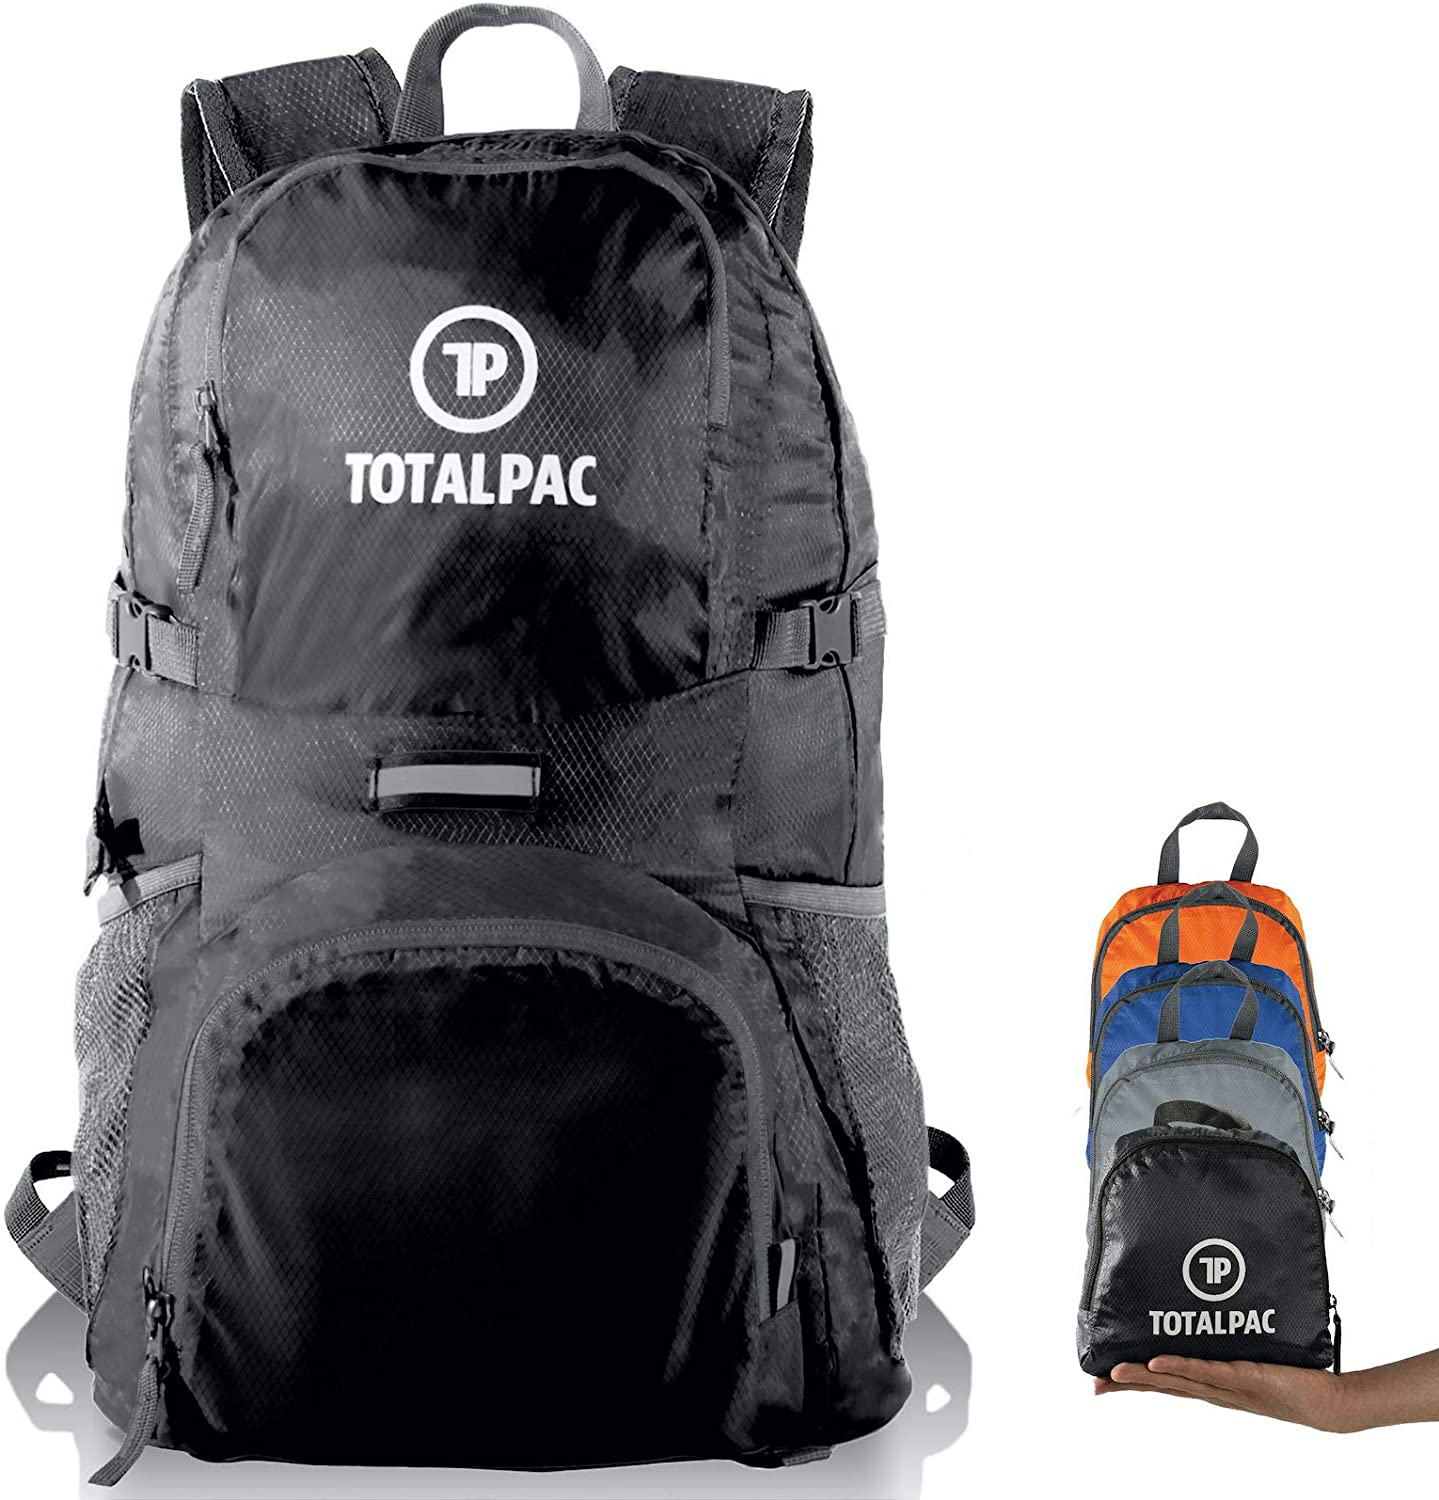 Totalpac - Opening large release sale Hiking Daypack – Foldable Traveling Backpack for Max 90% OFF